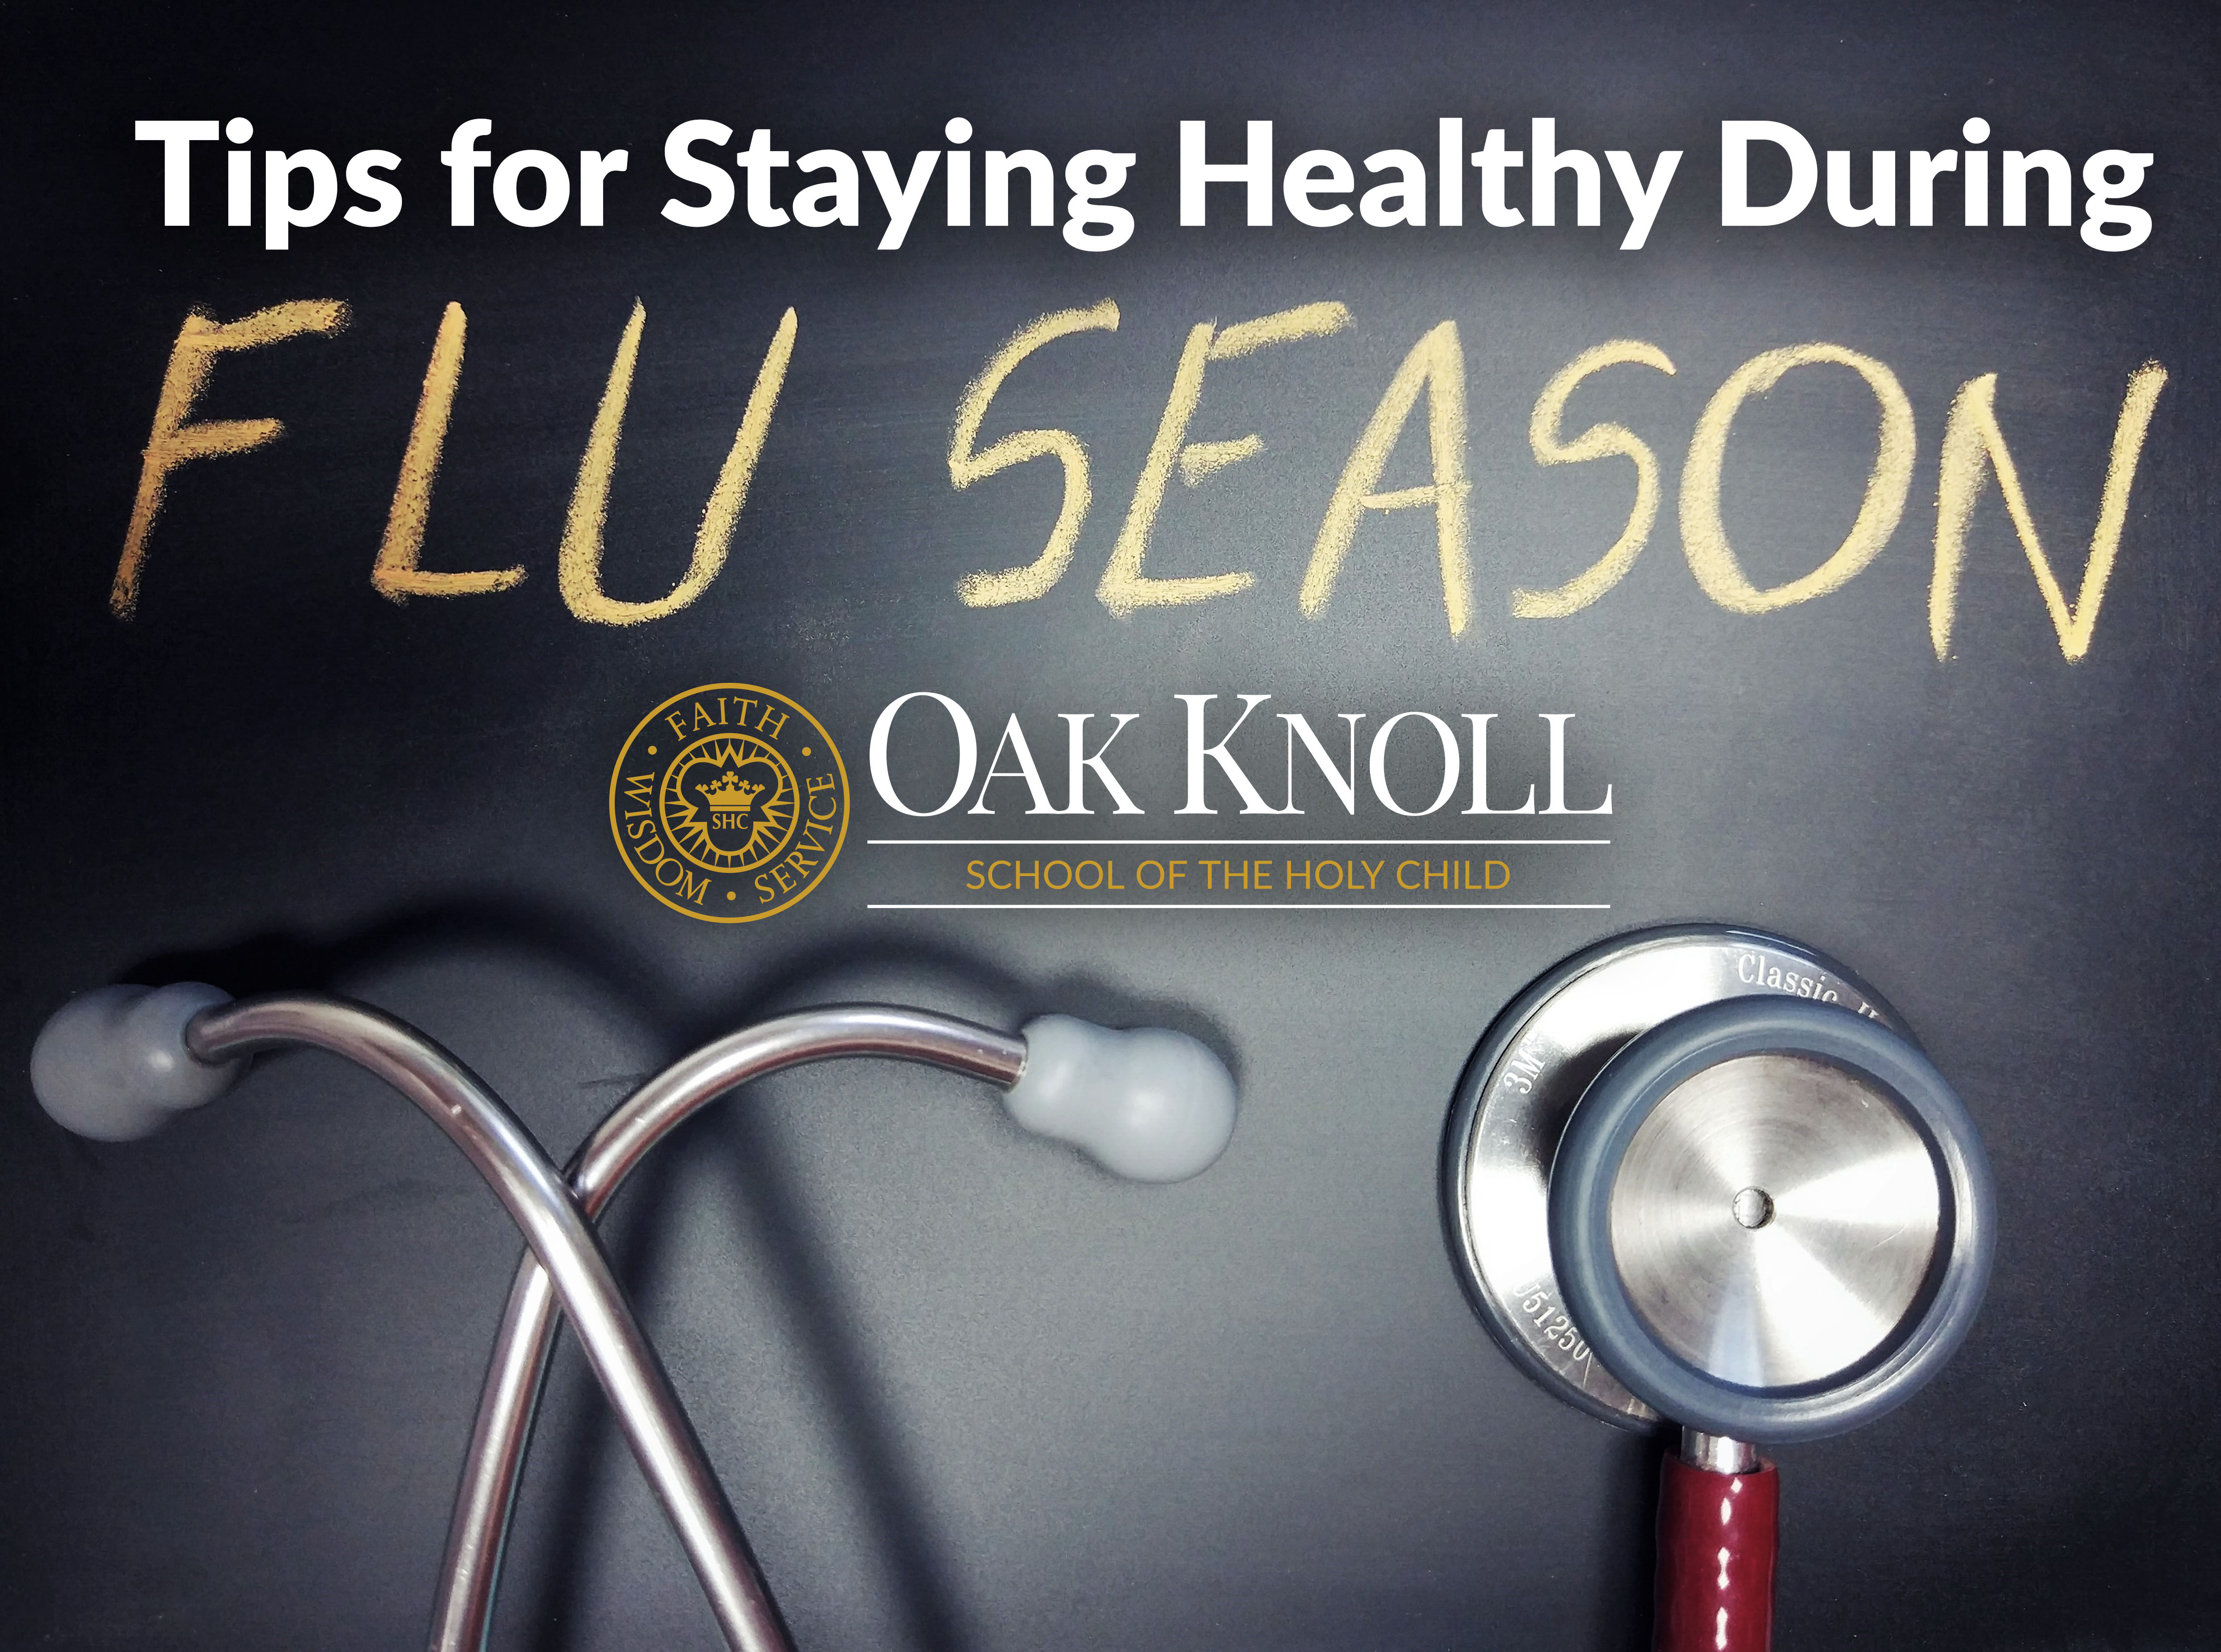 Tips for Staying Healthy During Flu Season